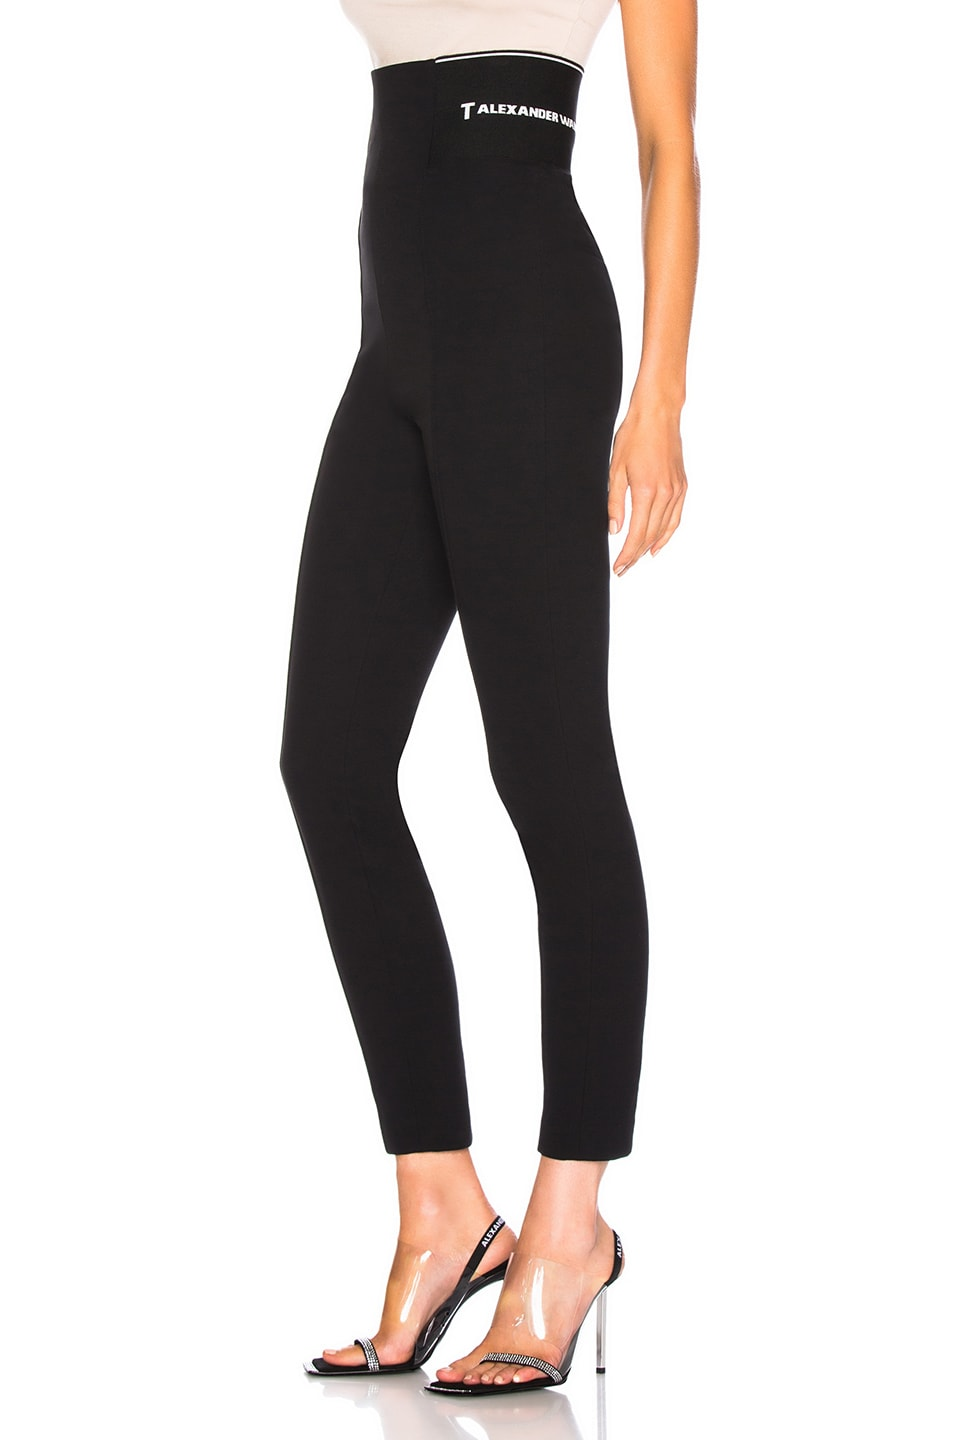 2f1120537121b Image 1 of T by Alexander Wang Suiting Legging in Black